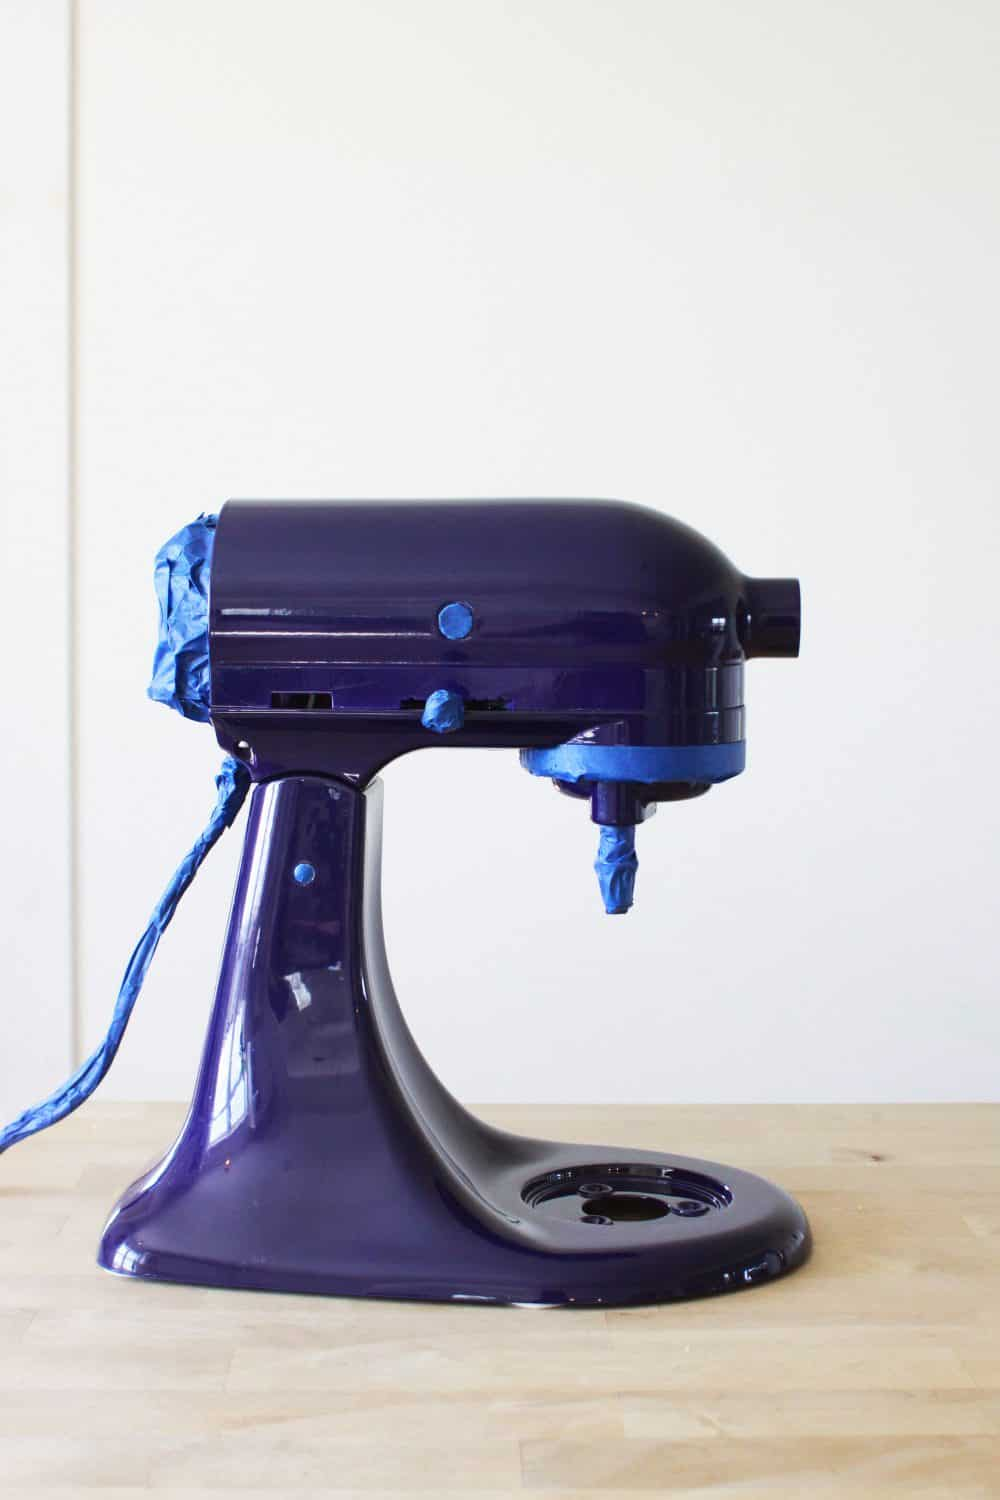 a royal blue KitchenAid mixer with parts taped off with blue painter's tape